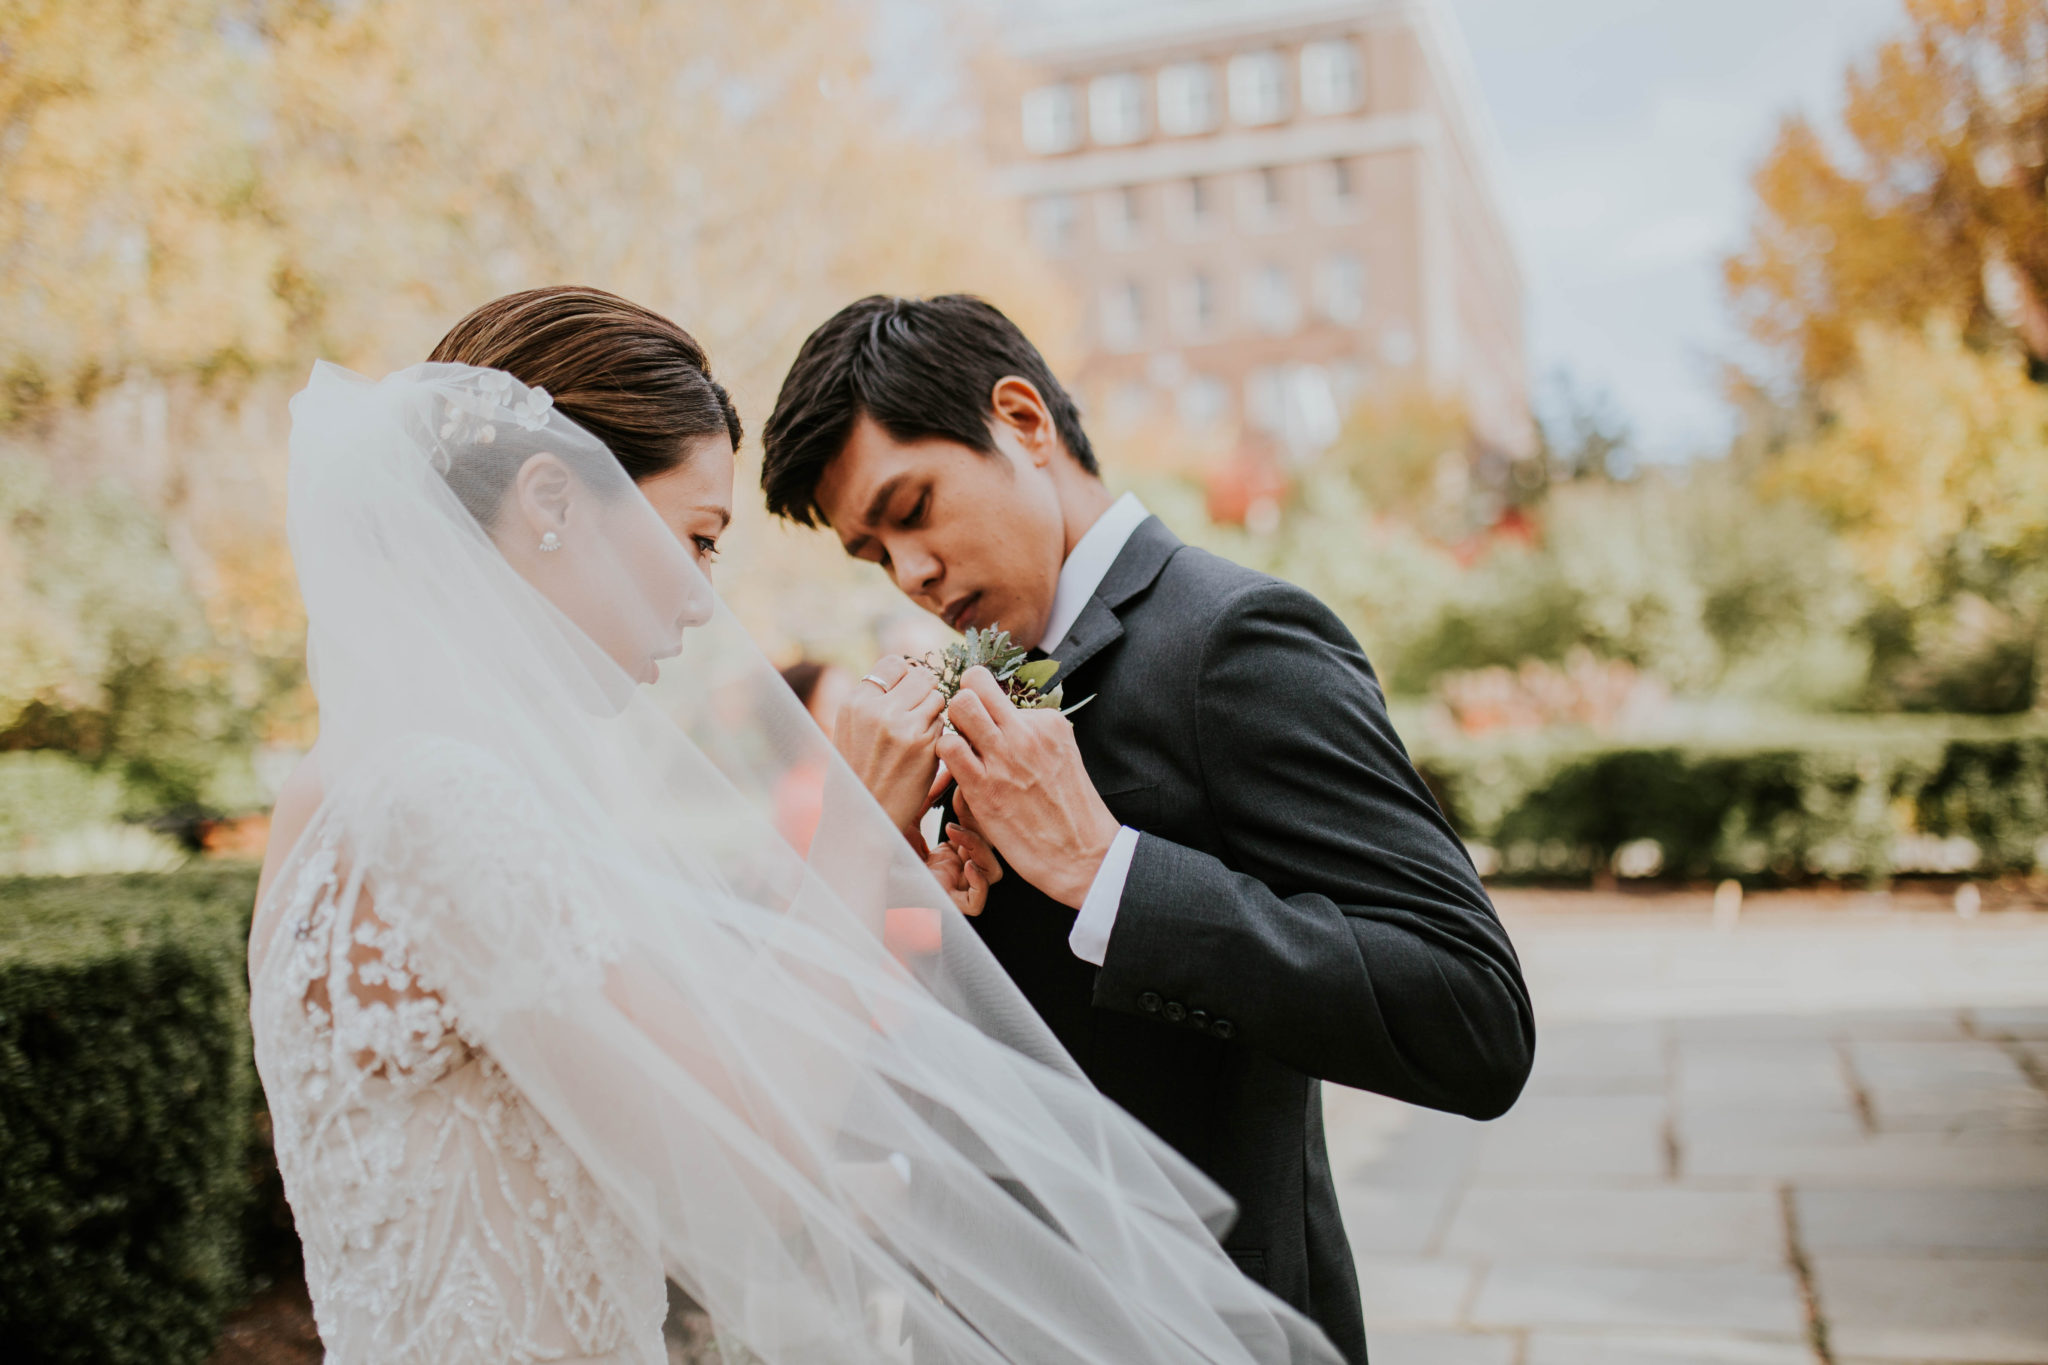 brooklyn-nyc-wedding-photographer-161